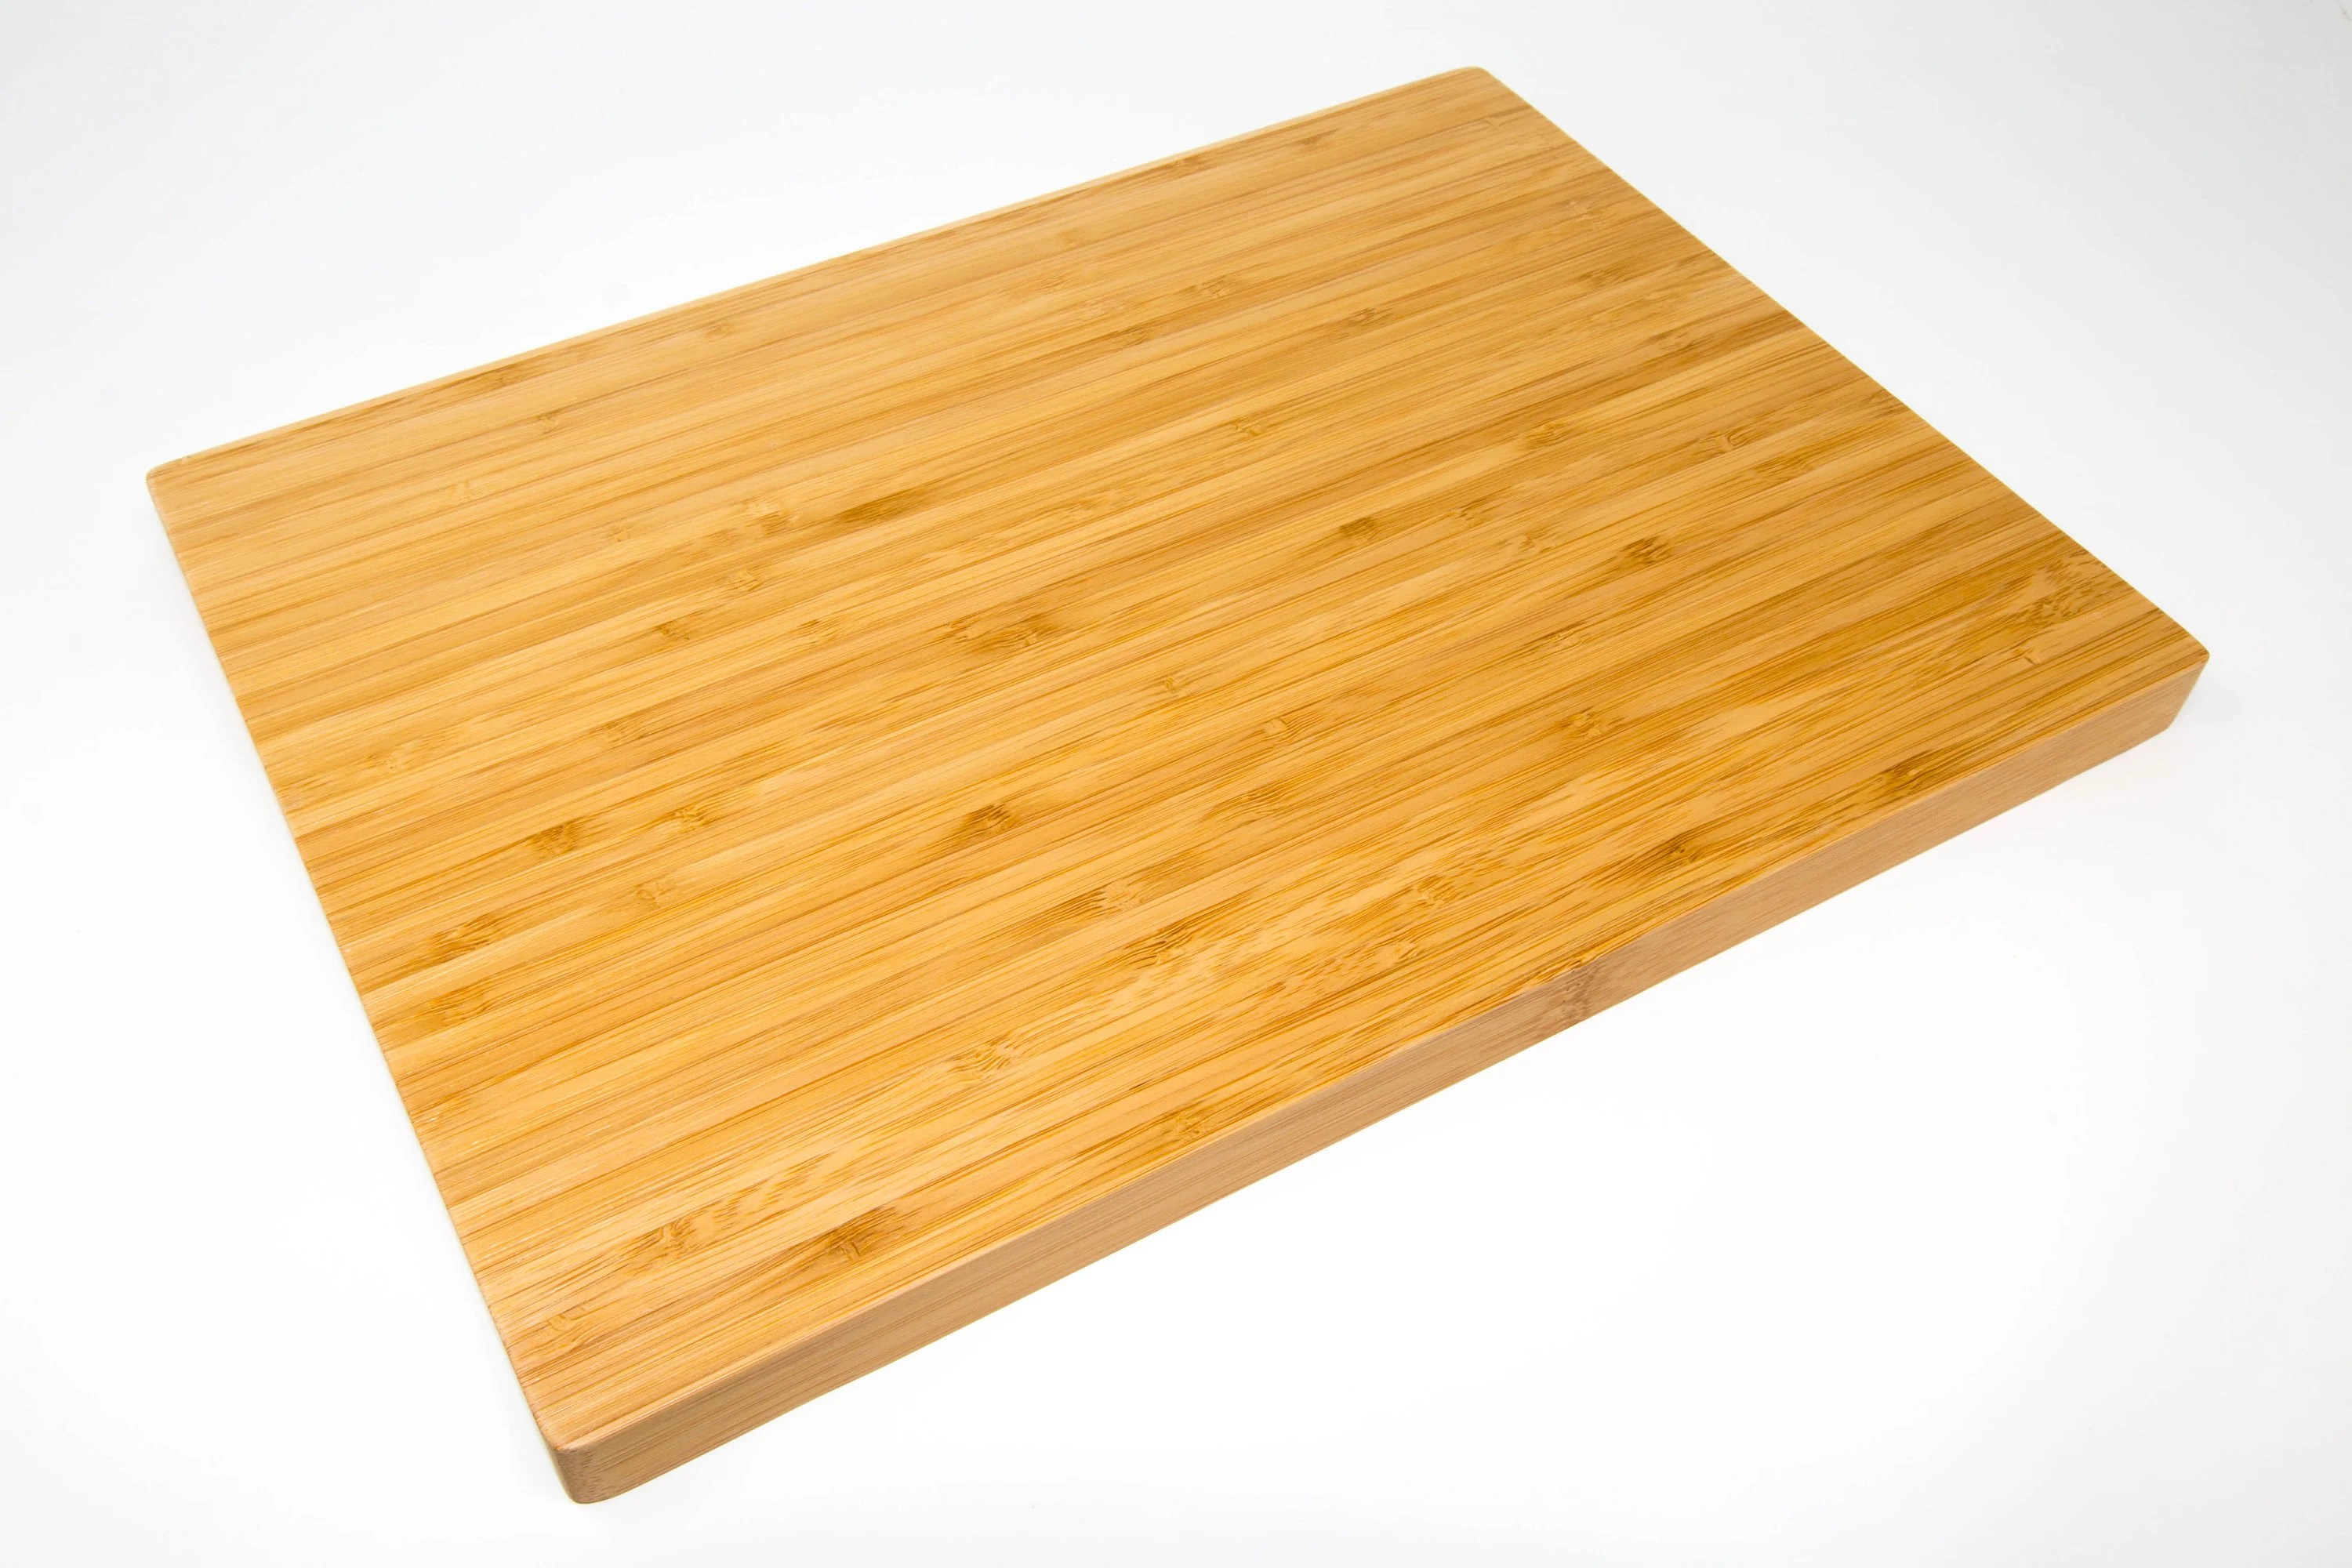 Personalized Cutting Board Engraved Cutting Board Kitchen Bamboo - Center